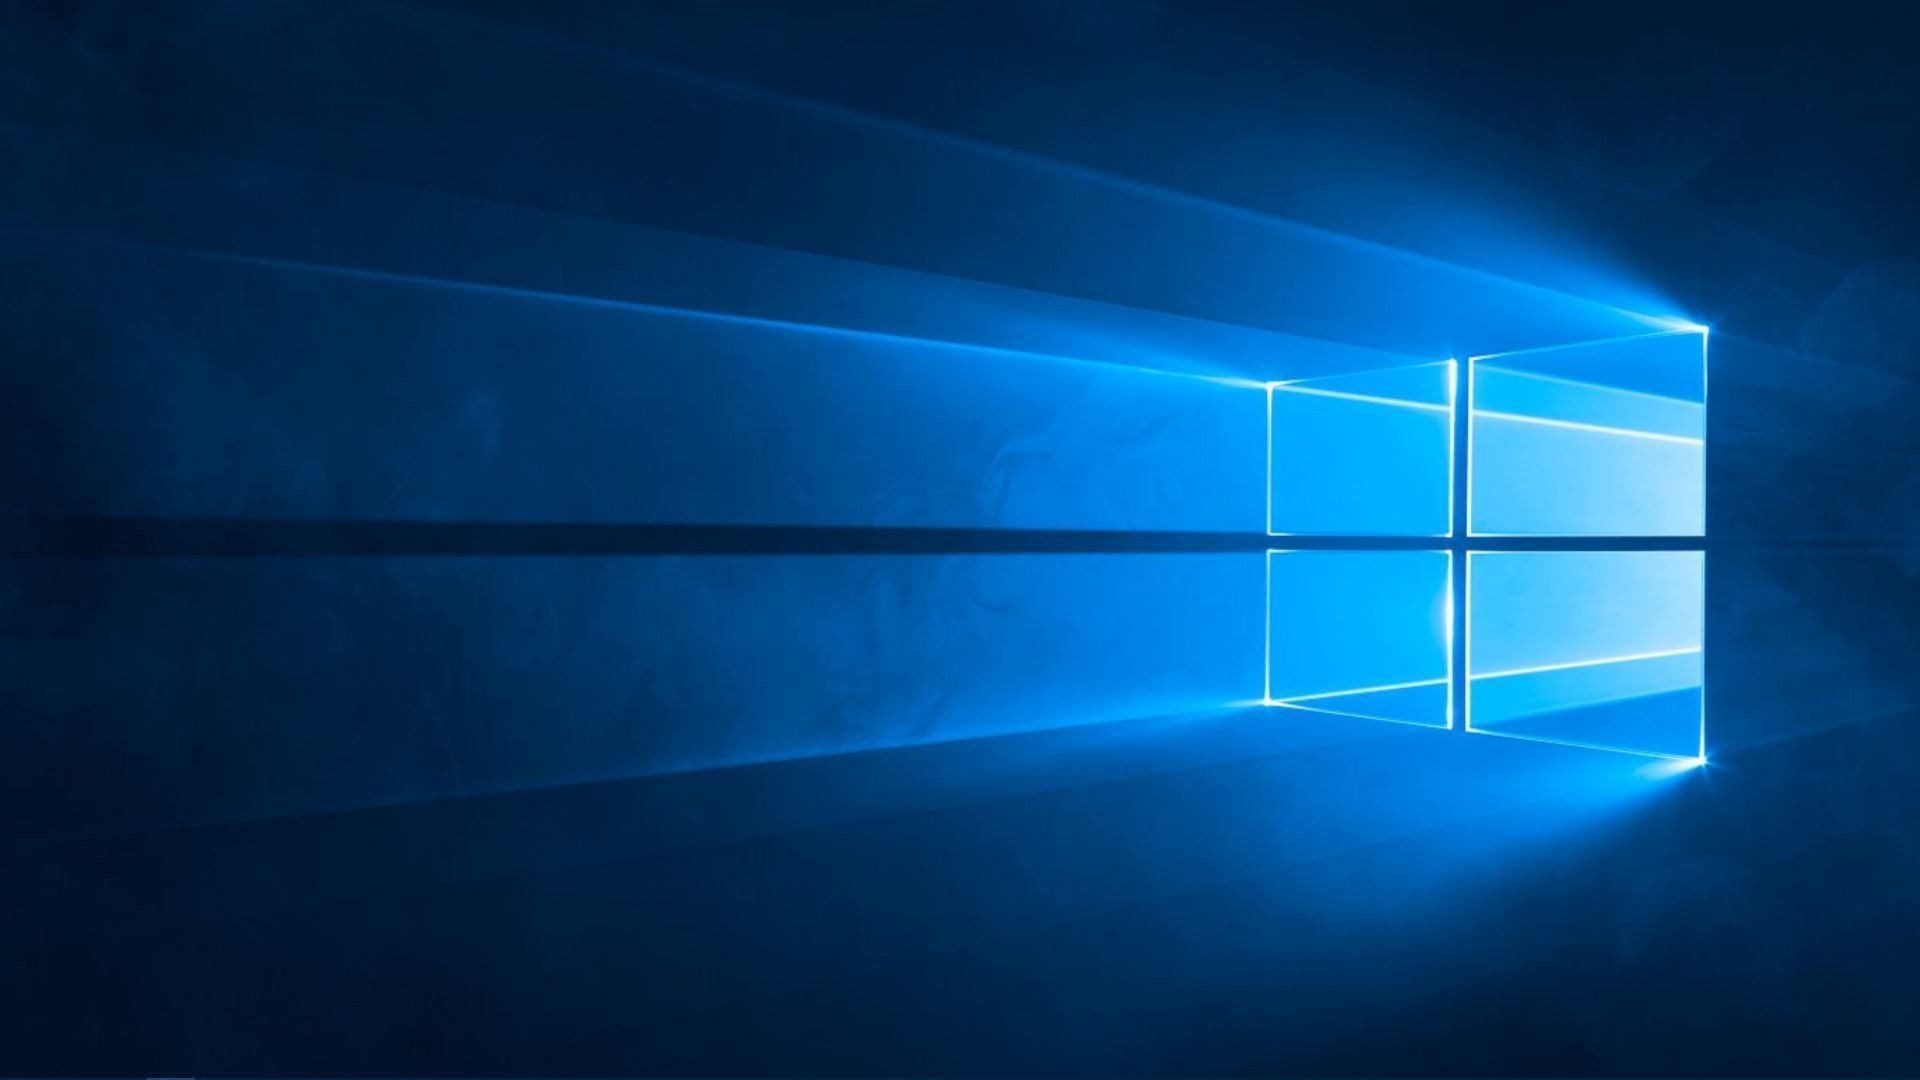 Beautiful Windows 10 Wallpaper Default 4k In 2020 Wallpaper Windows 10 Windows Wallpaper Windows 10 Background